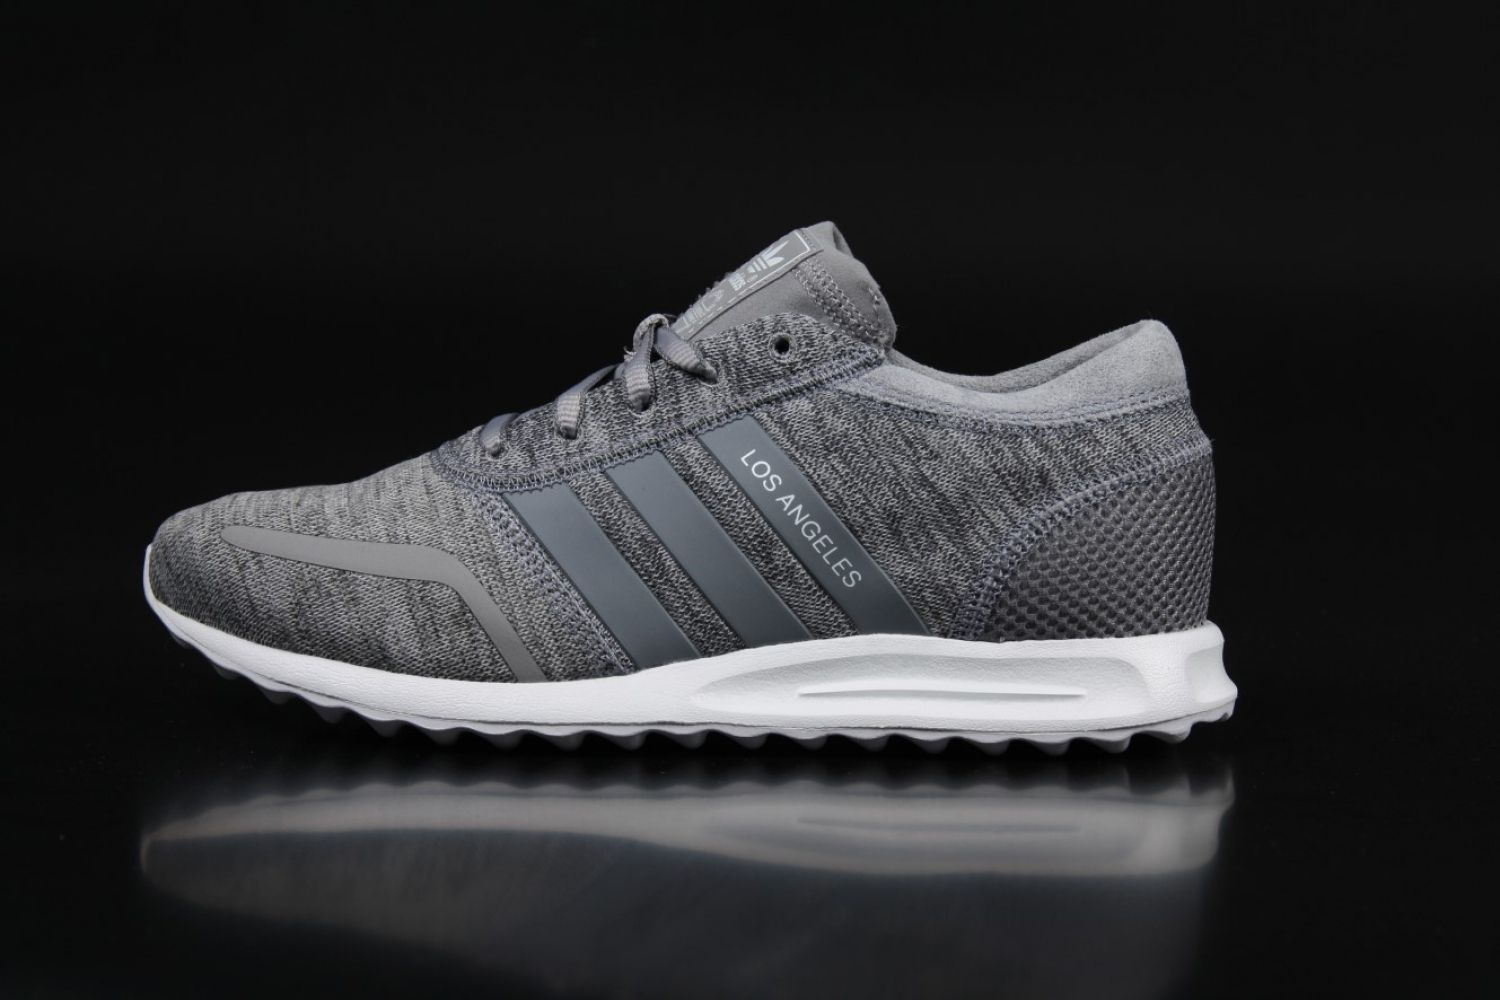 Adidas - Adidas Los Angeles W Light Granite Grey FTwr White sneakers -  Fahrenheitstore